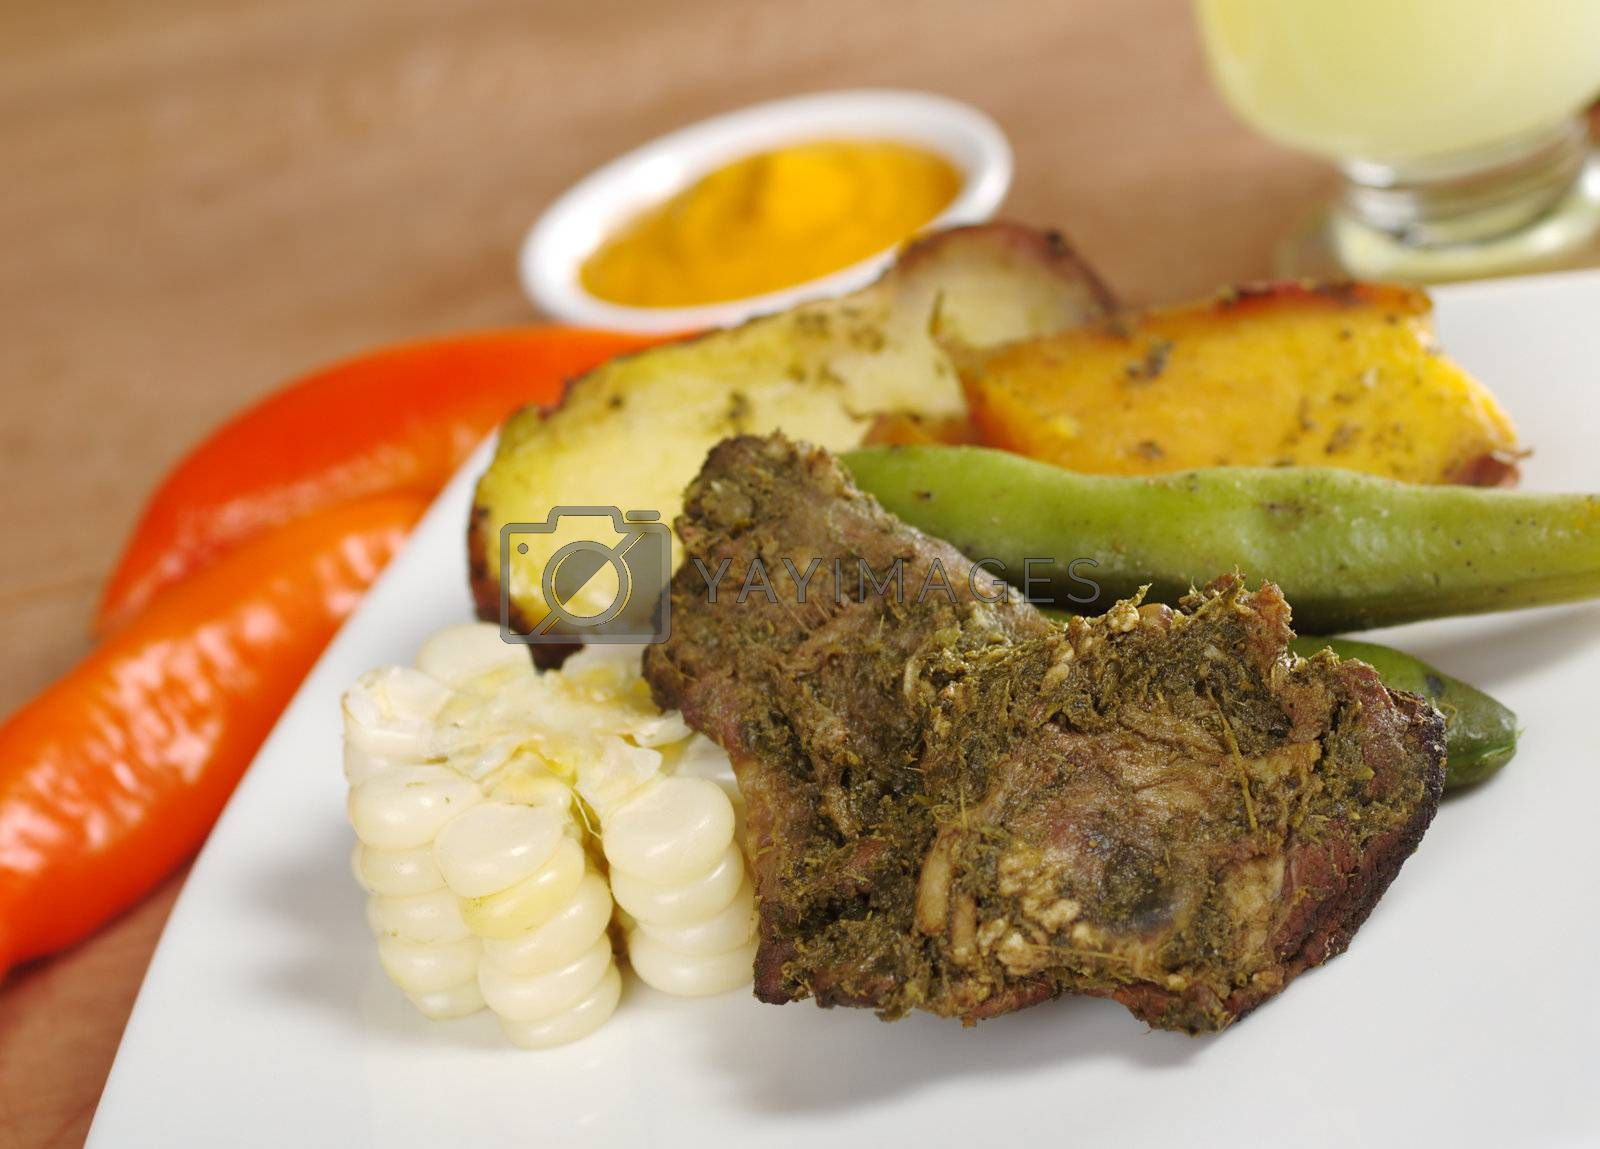 Pachamanca, which is a traditional meal from the Peruvian highlands, is made of different kinds of meat with beans and corn as well as potatoes and sweet potatoes, and is traditionally cooked in the ground (Selective Focus, Focus on the upper right part of the meat)